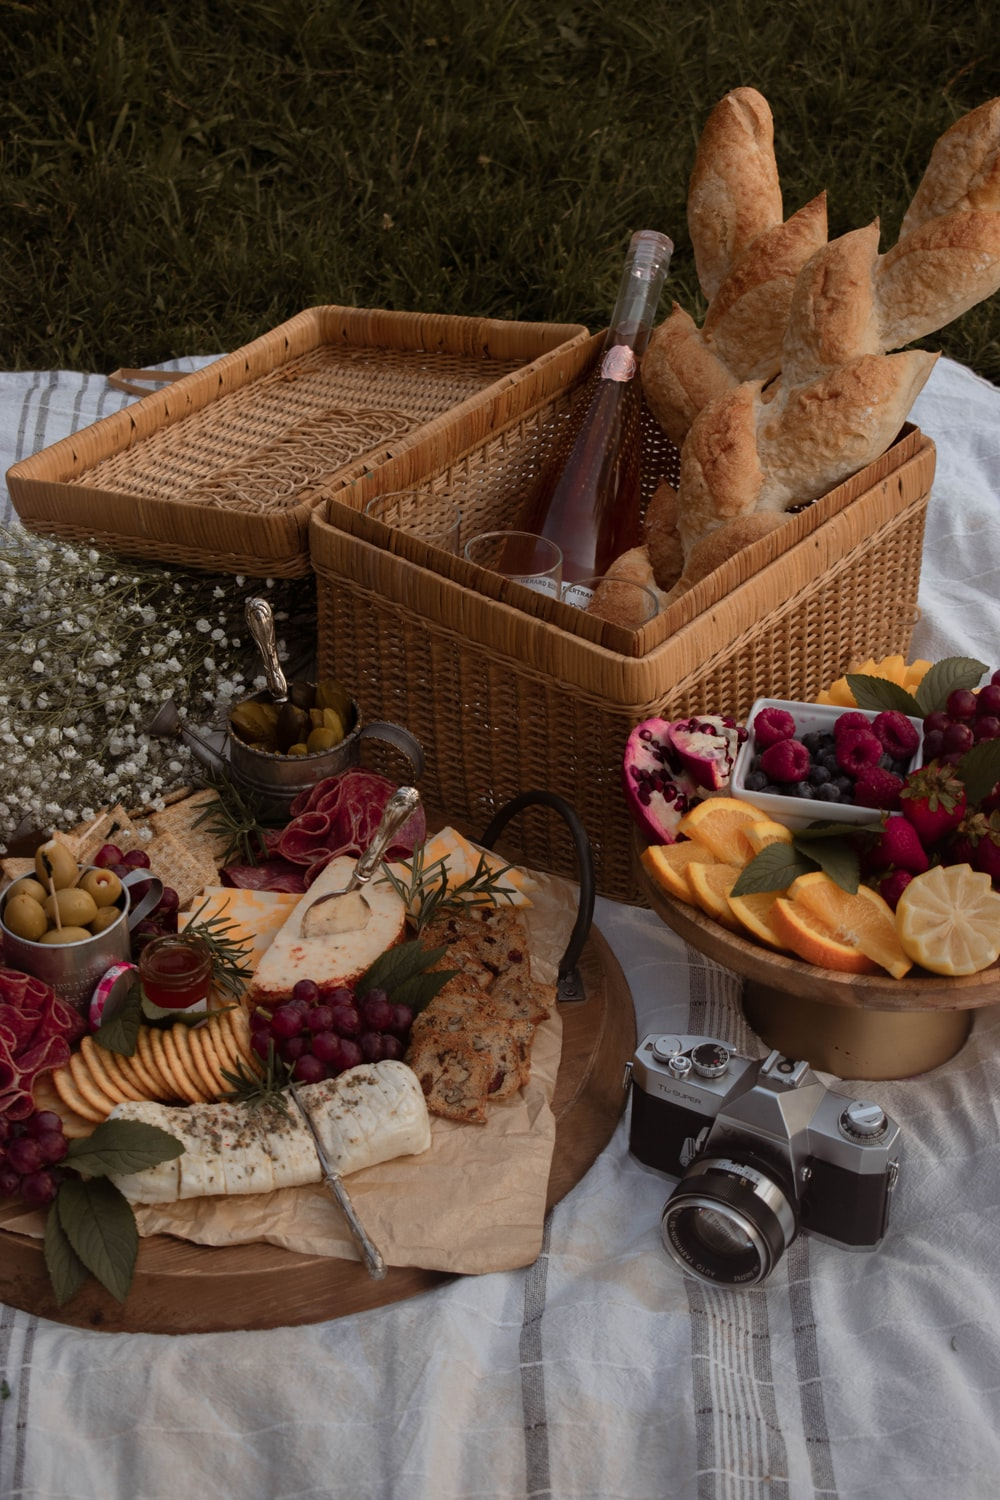 brown wicker basket with fruits and bread